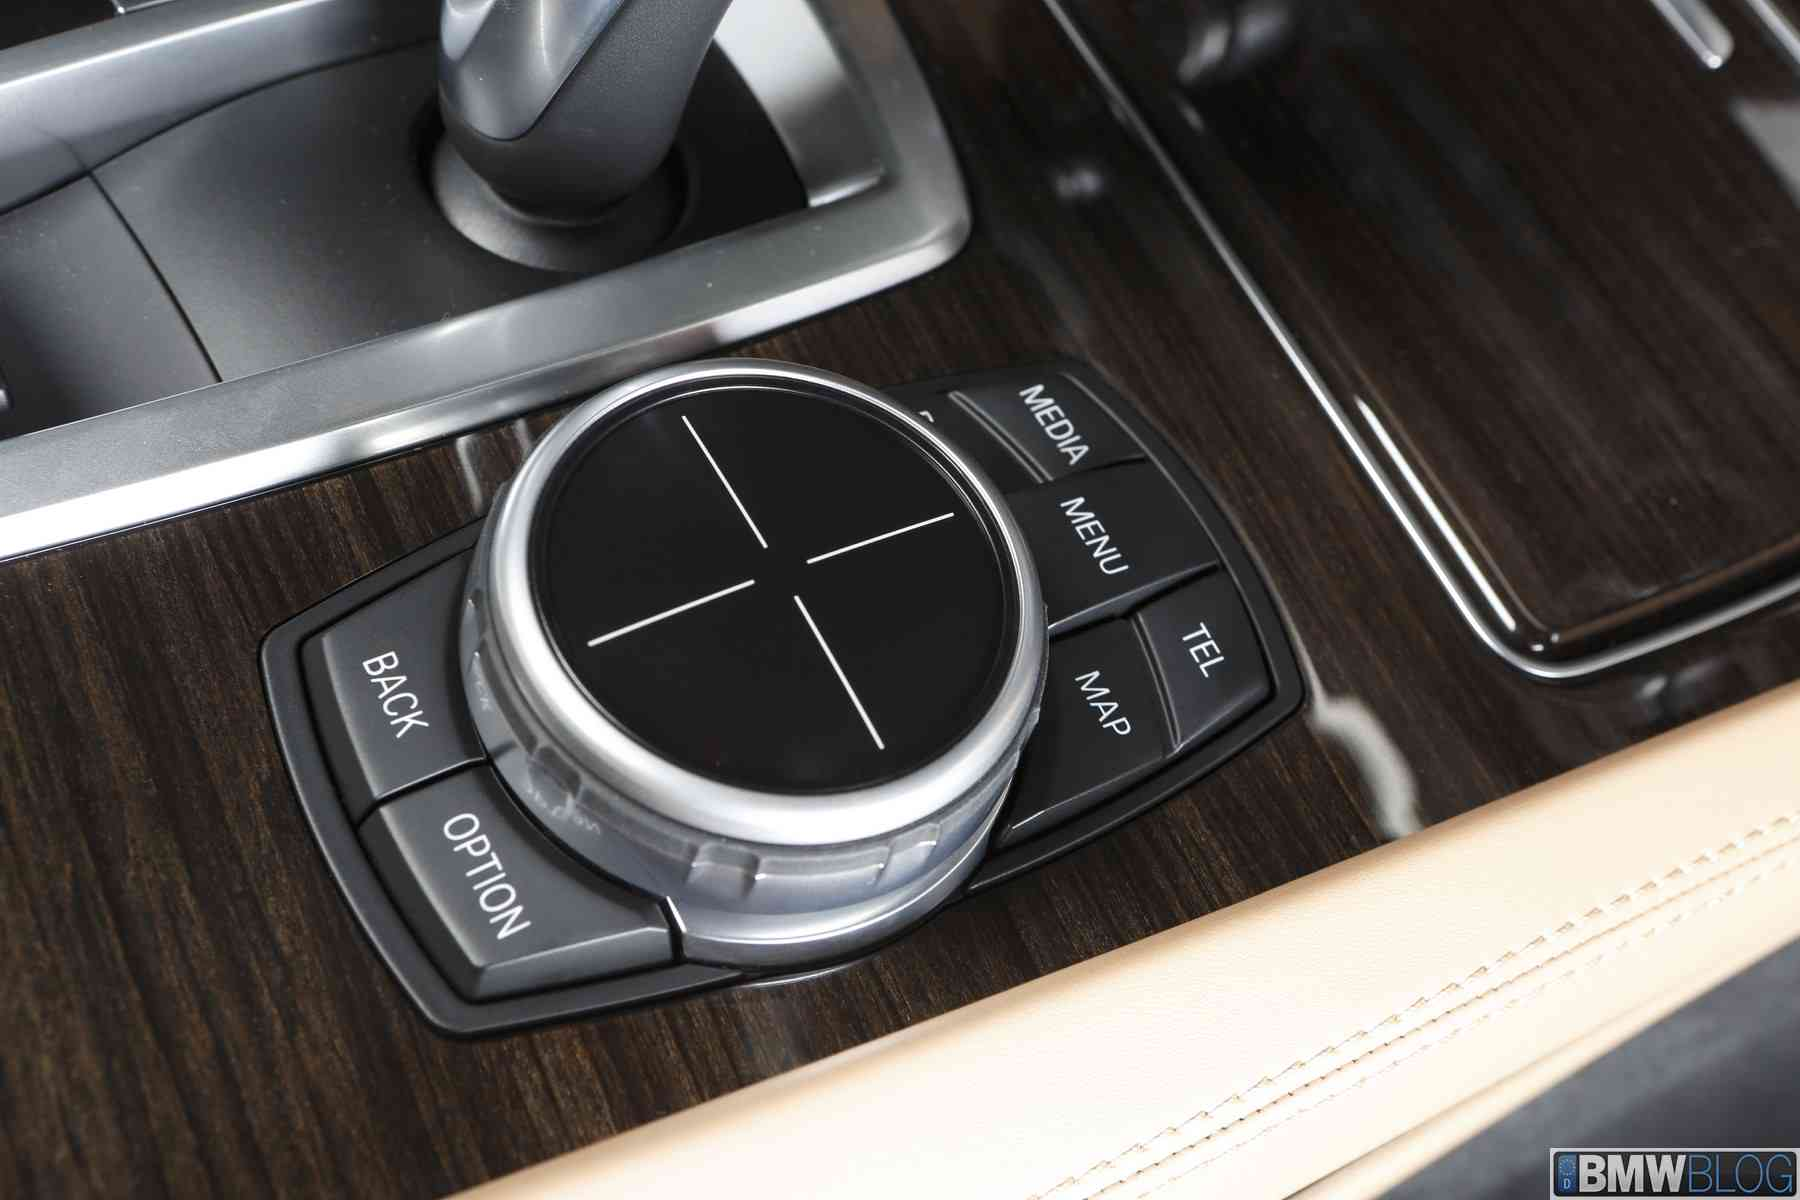 BMW iDrive Touch Controller 102